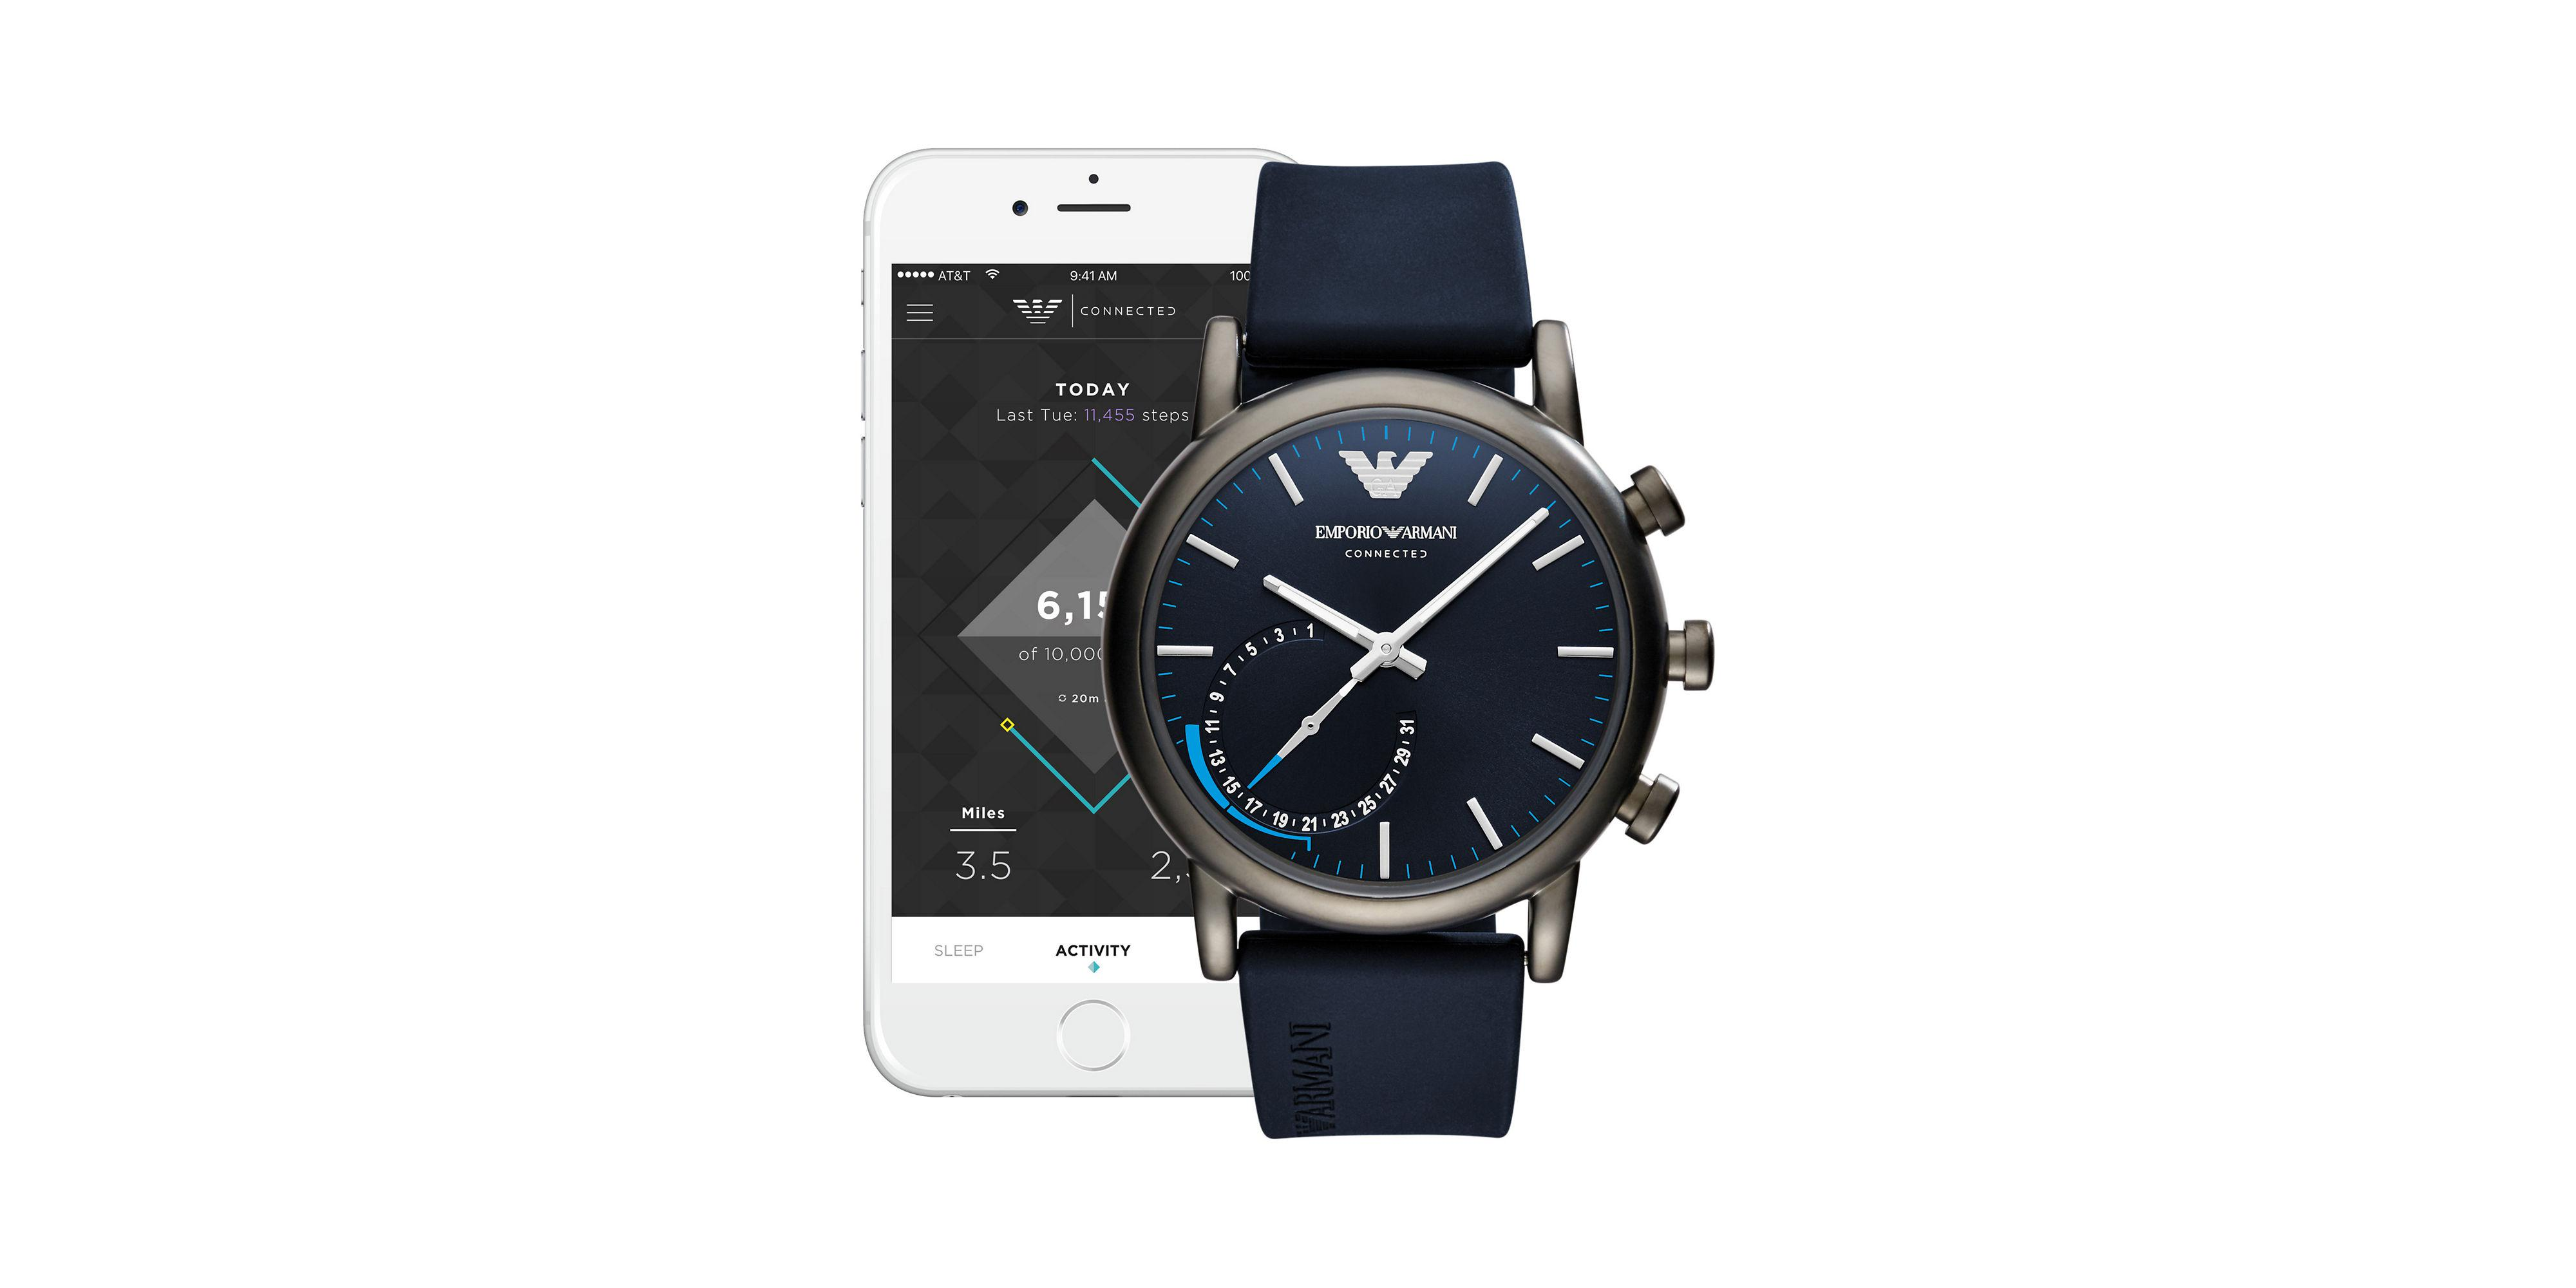 of watch new featuring amazing concept were them smartwatch the hybrid attachement off designs pocket pretty finishes look samsung shows watches actual gear also variants some baselworld there and bands